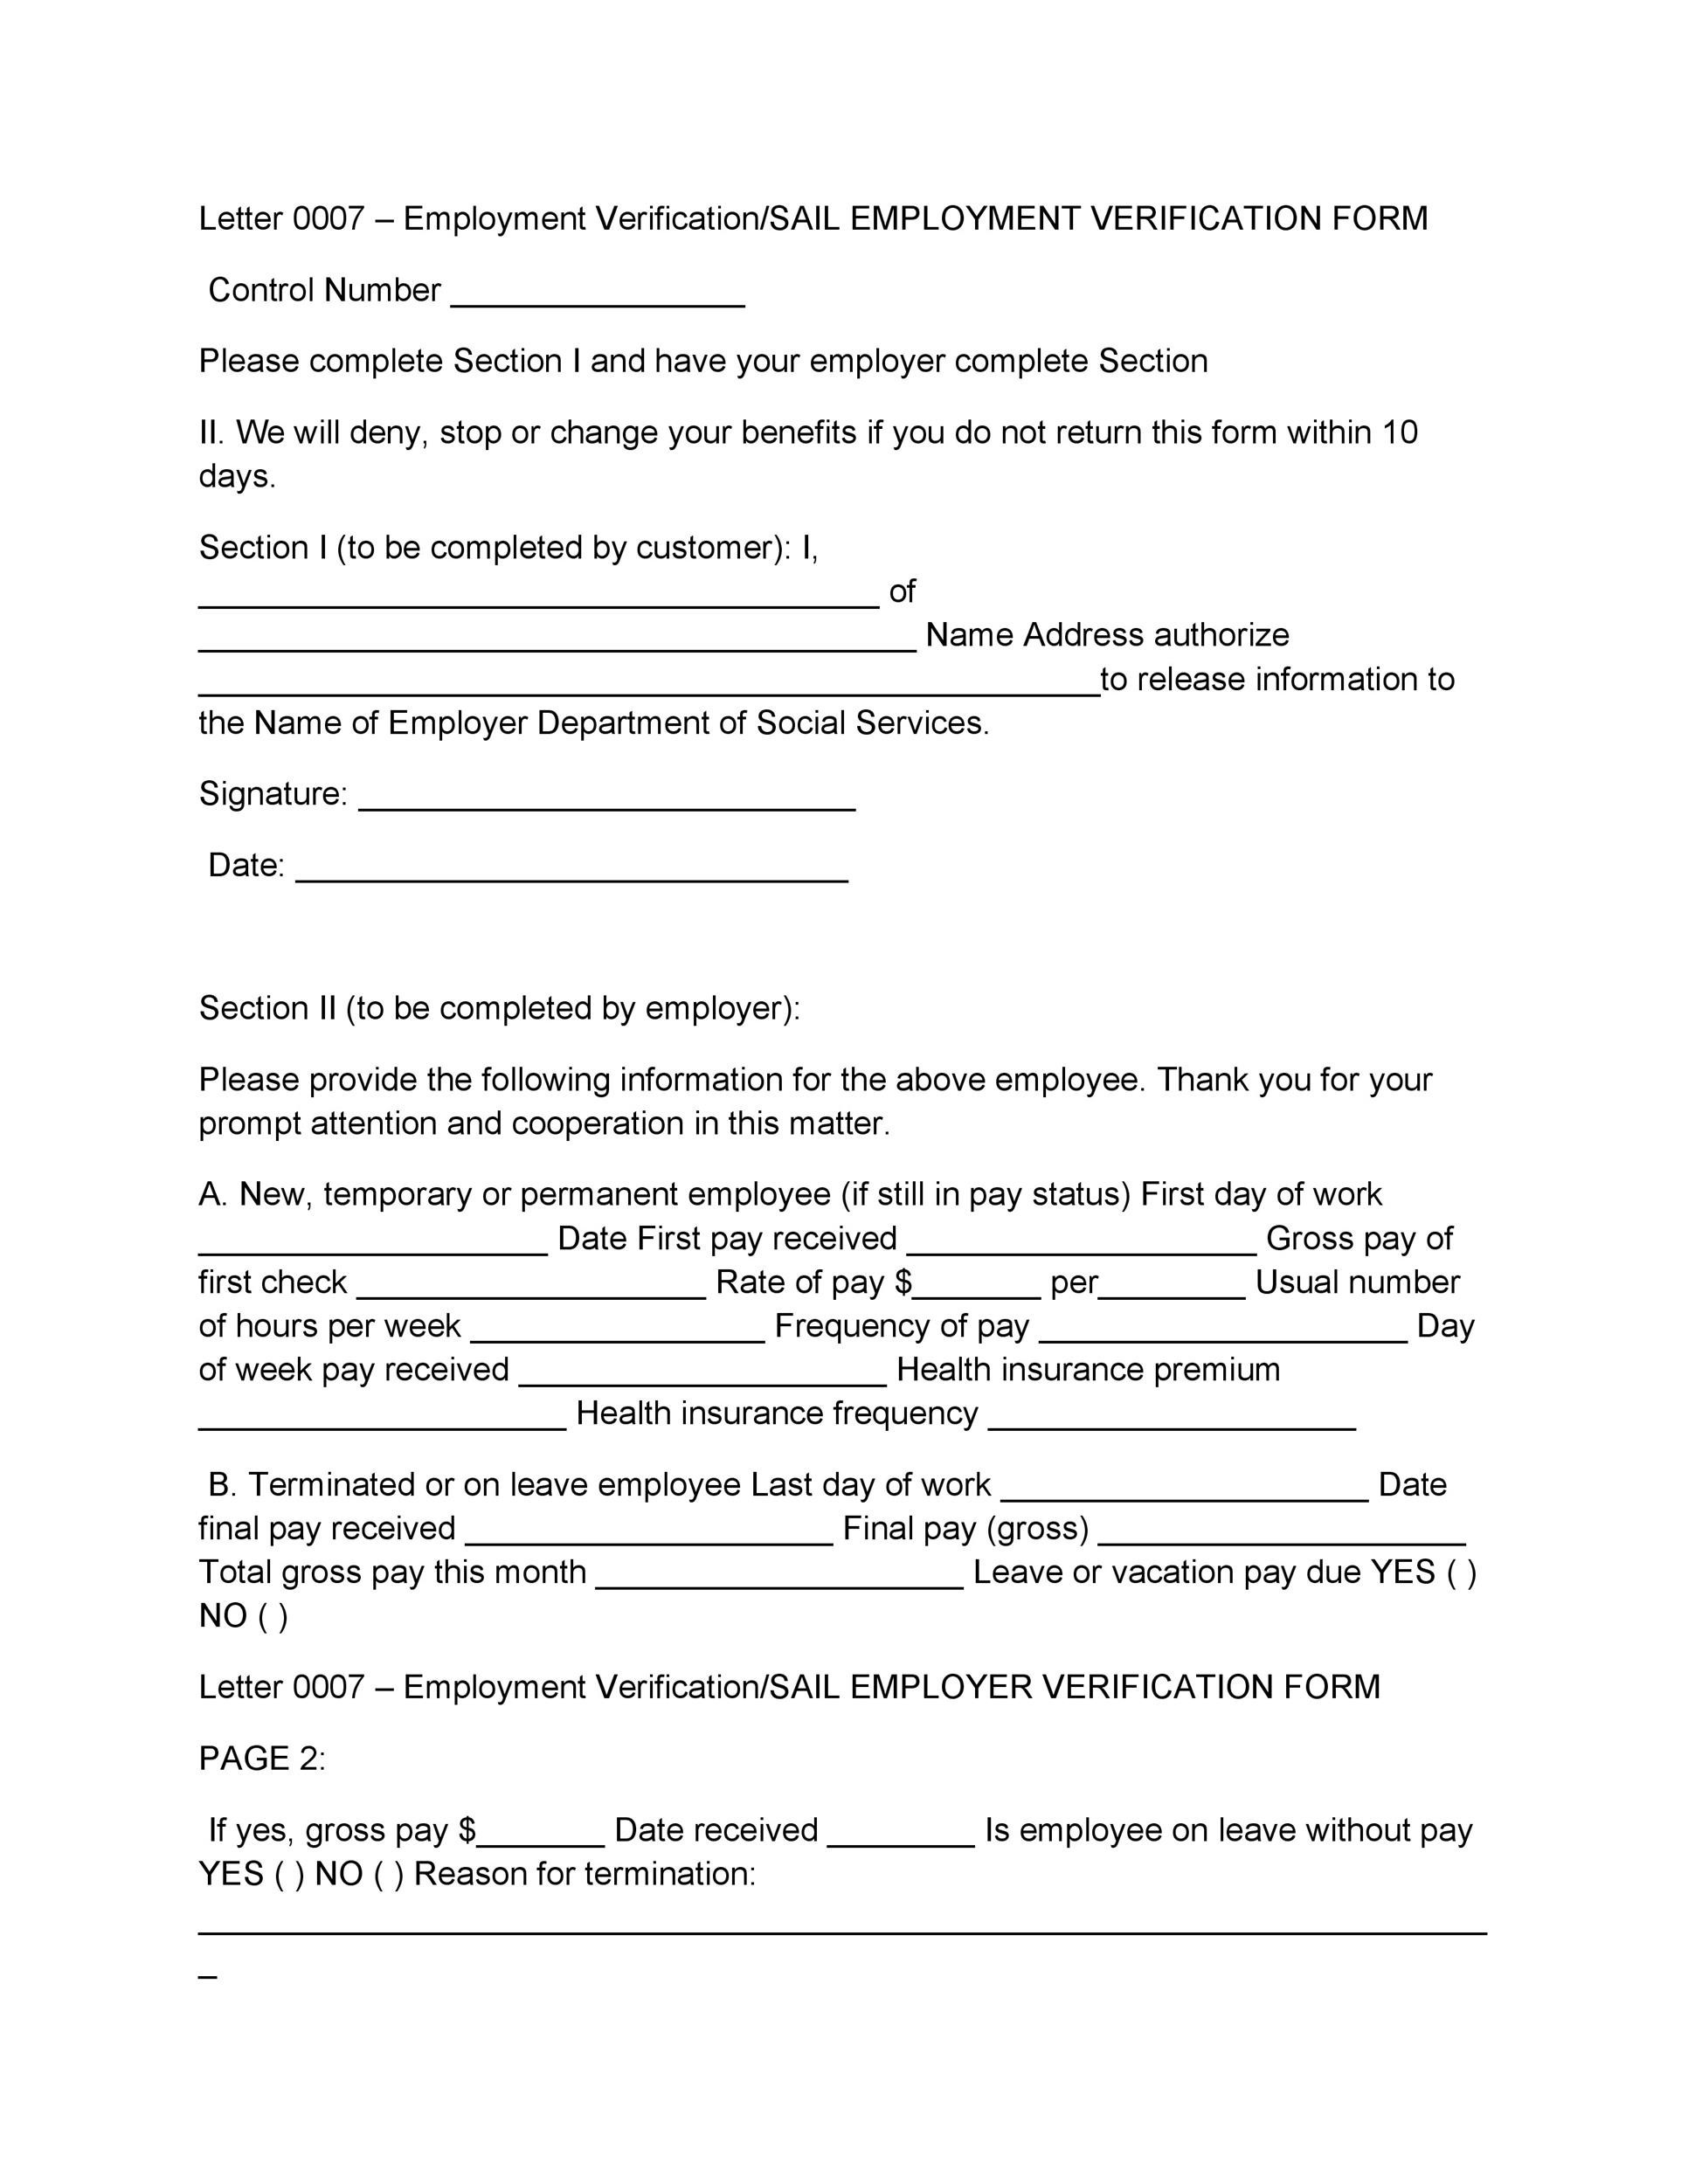 40 Proof of Employment Letters Verification Forms Samples – Generic Employment Verification Form